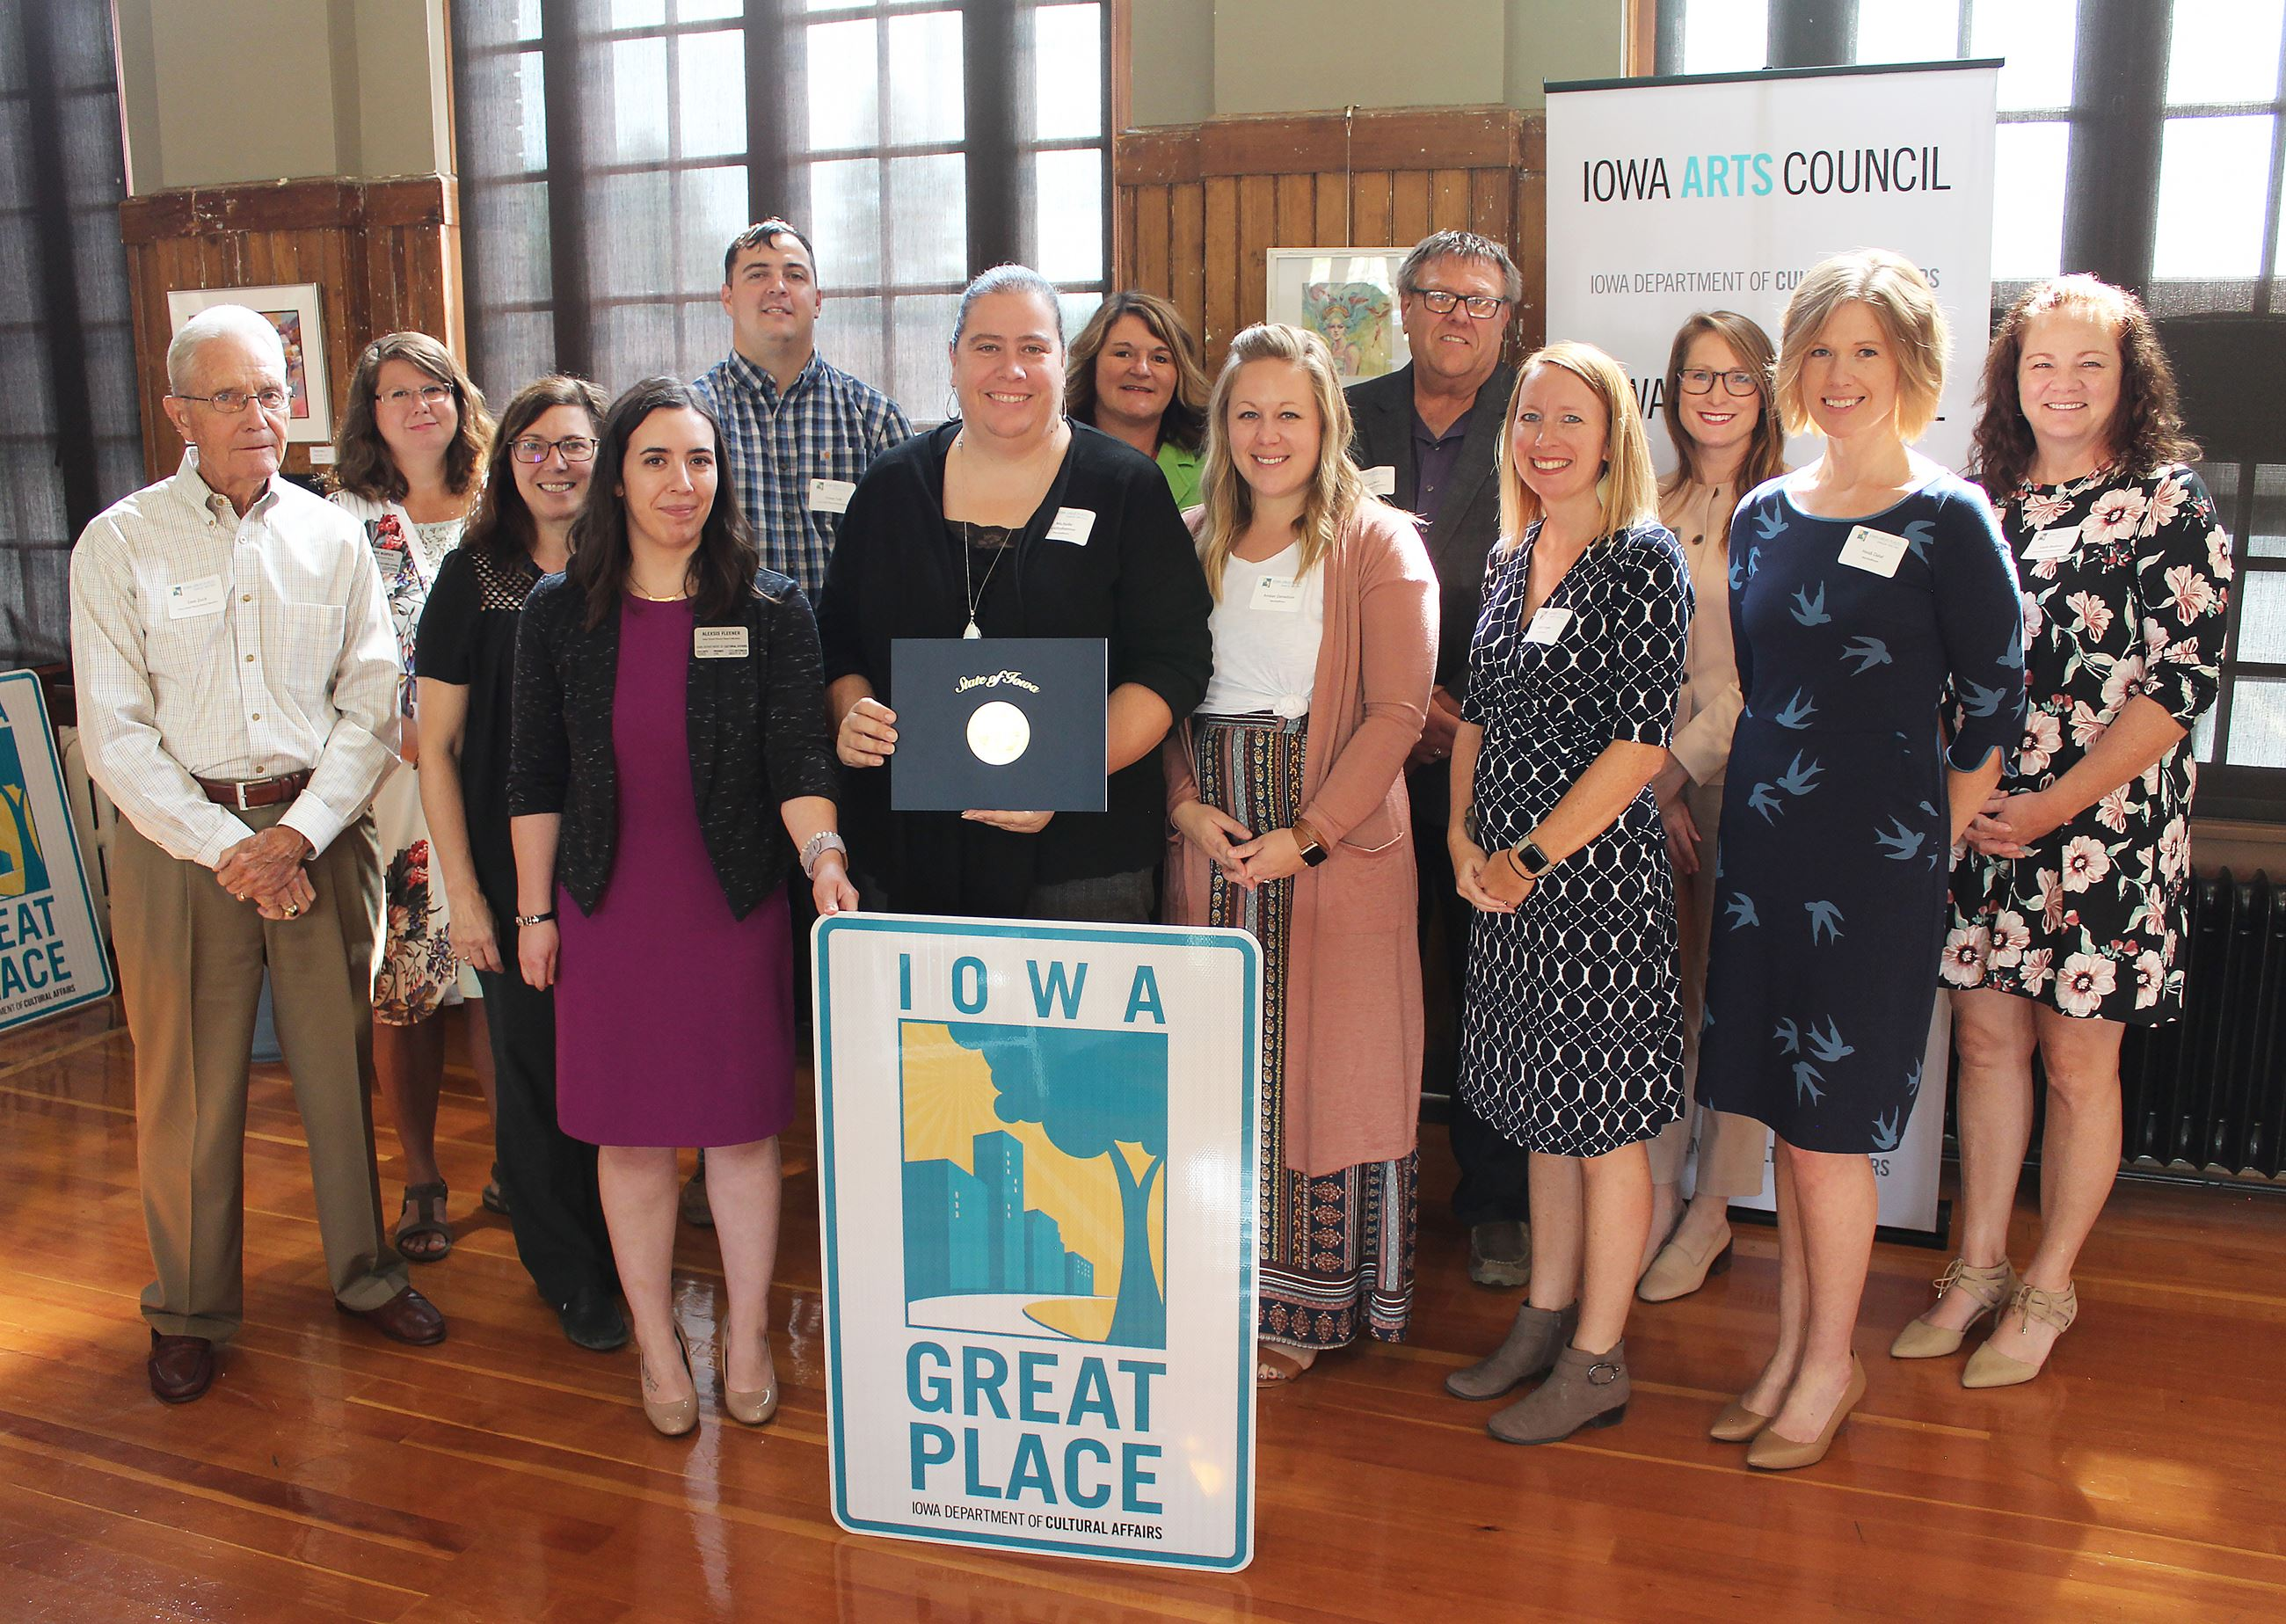 Marshalltown Iowa Great Place Award Photo